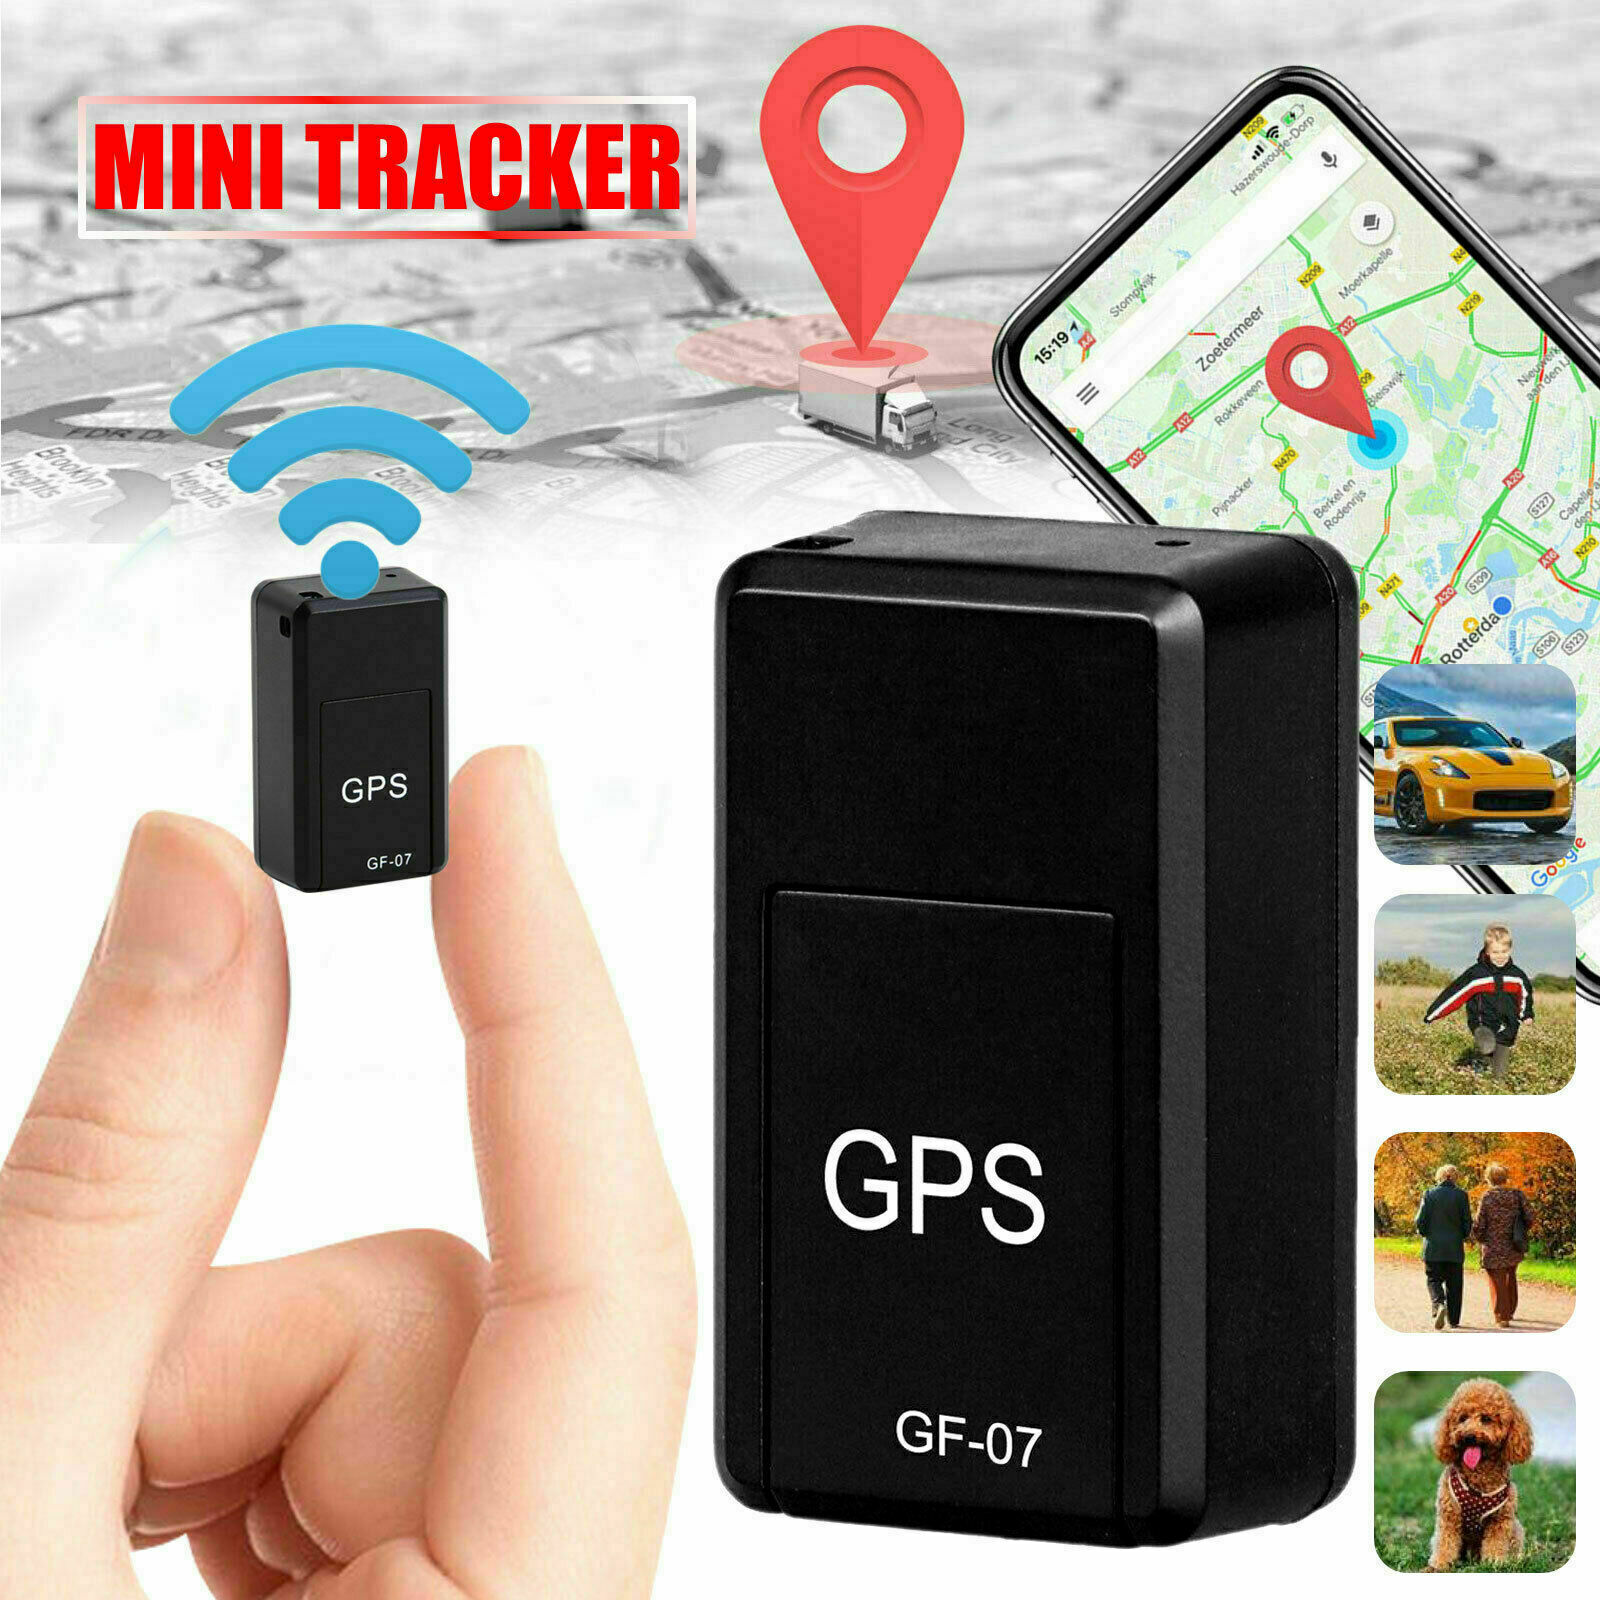 New Mini GPS Tracker GF07 GPS Locator Recording Anti-Lost Device Support Remote Operation Of Mobile Phone GPRS Tracking Device